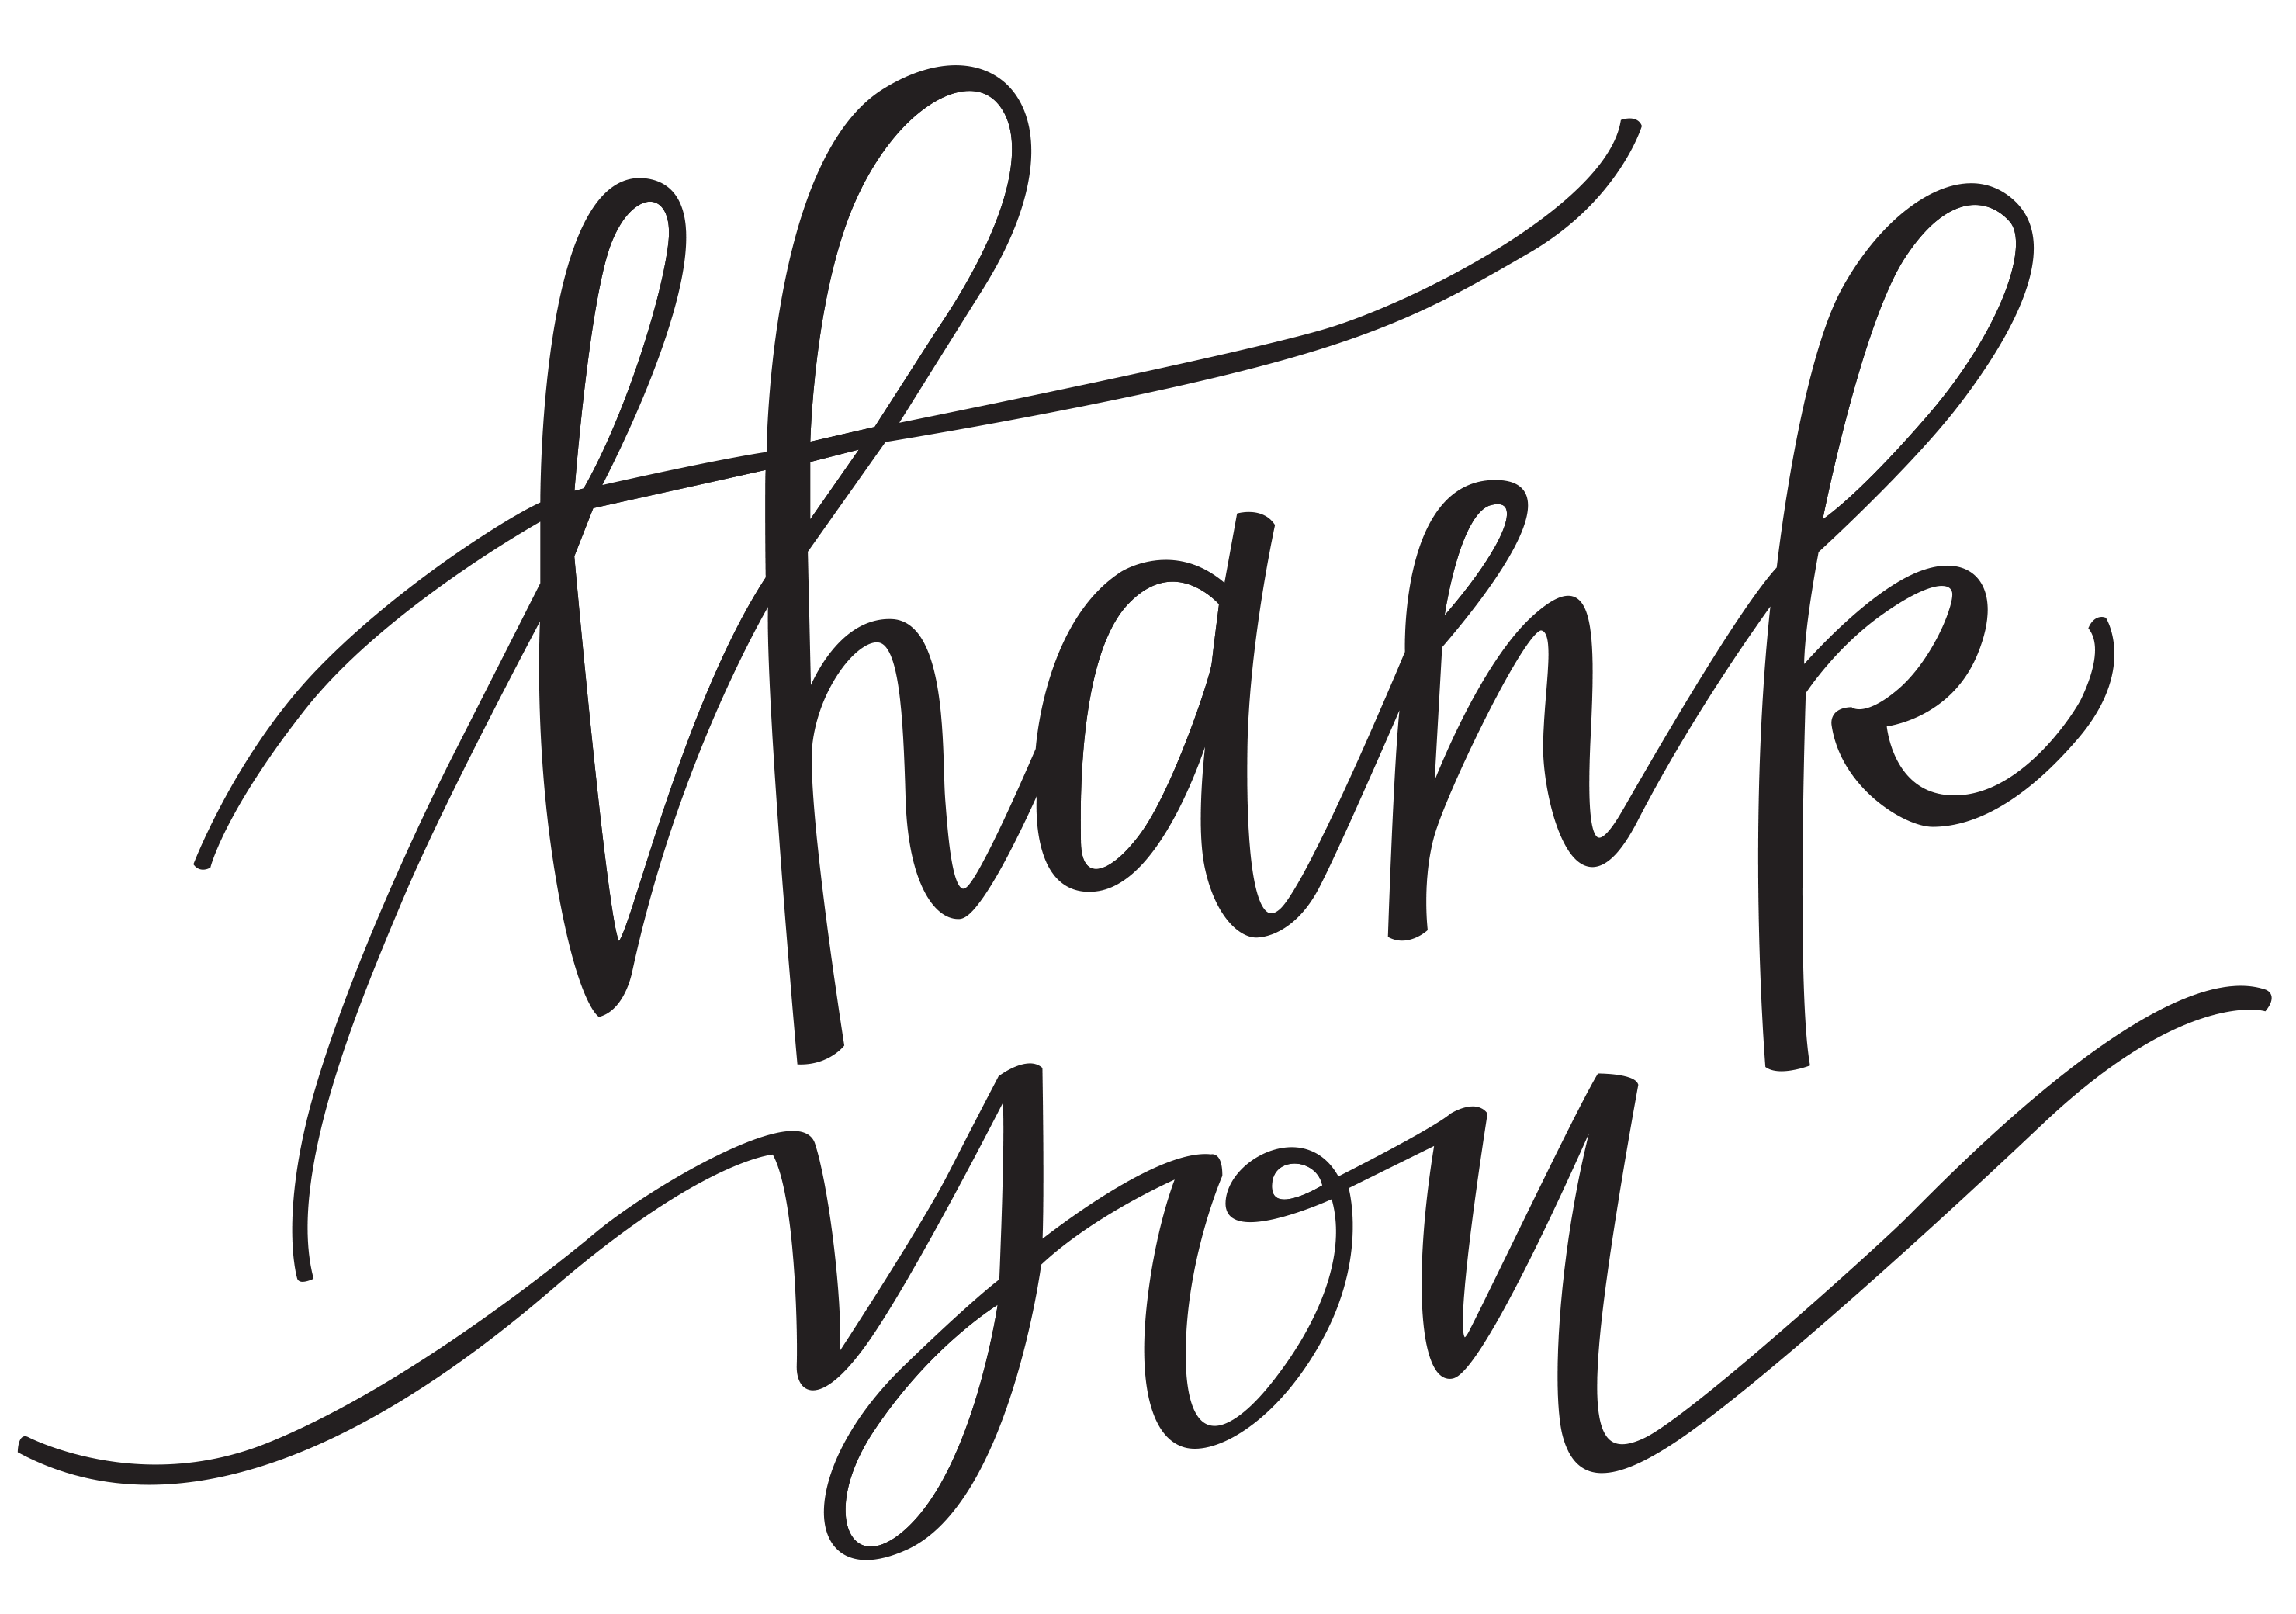 Thank You Png   Free download on ClipArtMag